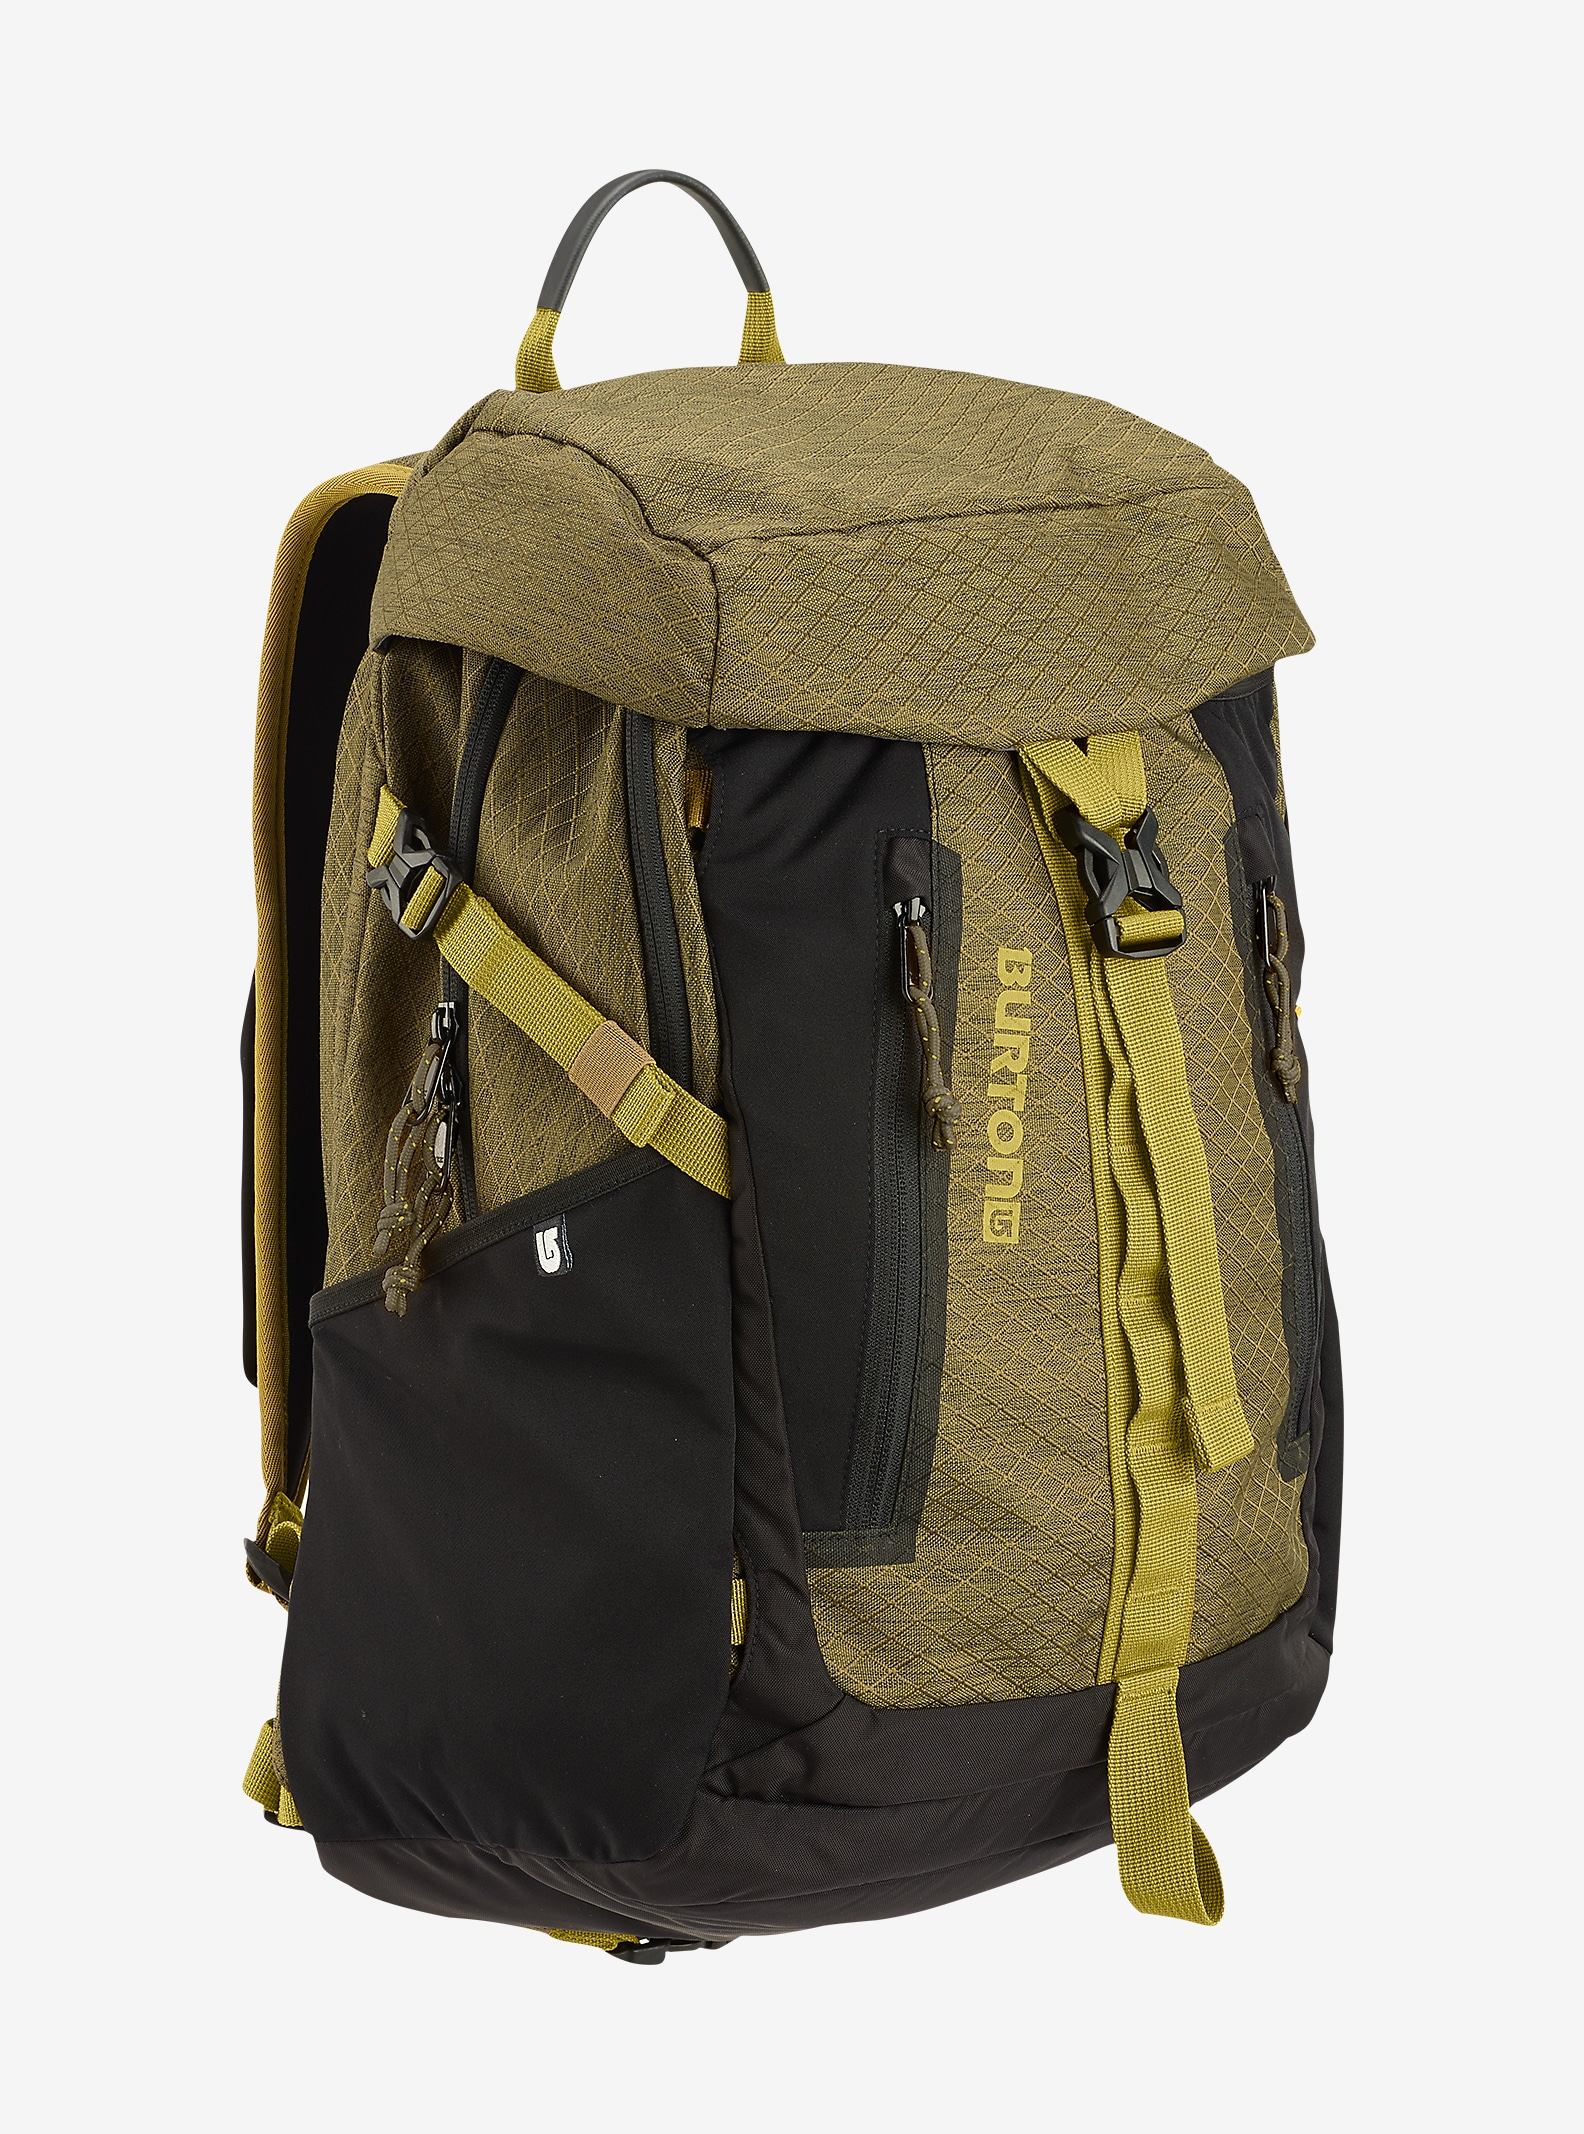 Burton Day Hiker Pinnacle 31L Backpack shown in Jungle Heather Diamond Ripstop